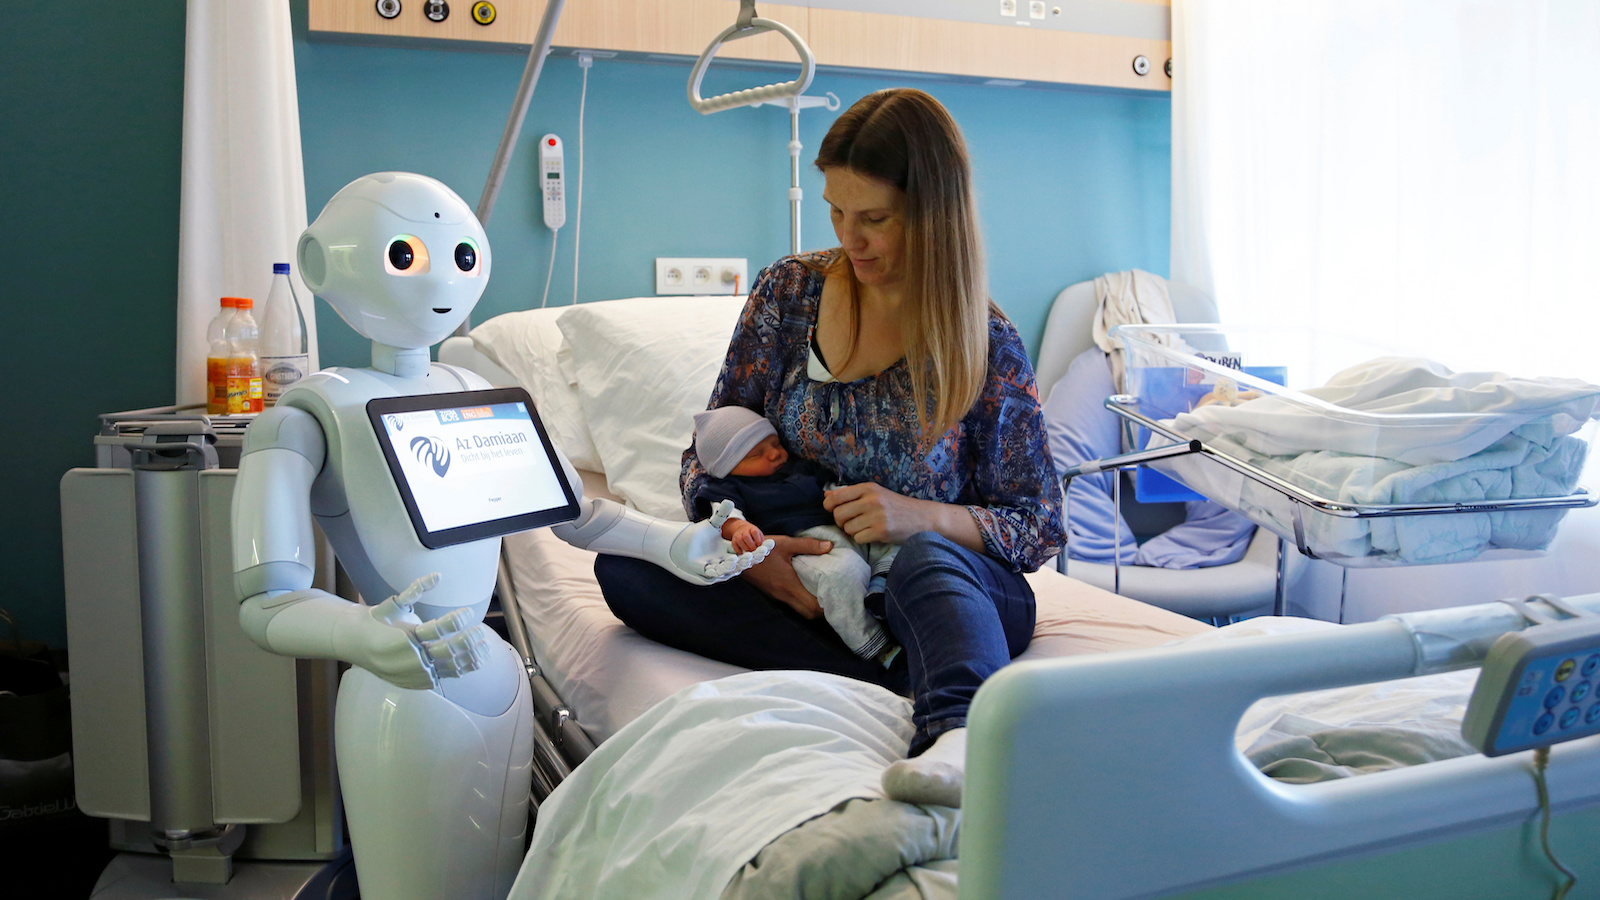 """New recruit """"Pepper"""" the robot, a humanoid robot designed to welcome and take care of visitors and patients, holds the hand of a new born baby next to his mother at AZ Damiaan hospital in Ostend, Belgium June 16, 2016. REUTERS/Francois Lenoir     TPX IMAGES OF THE DAY      - RTX2GKIO"""